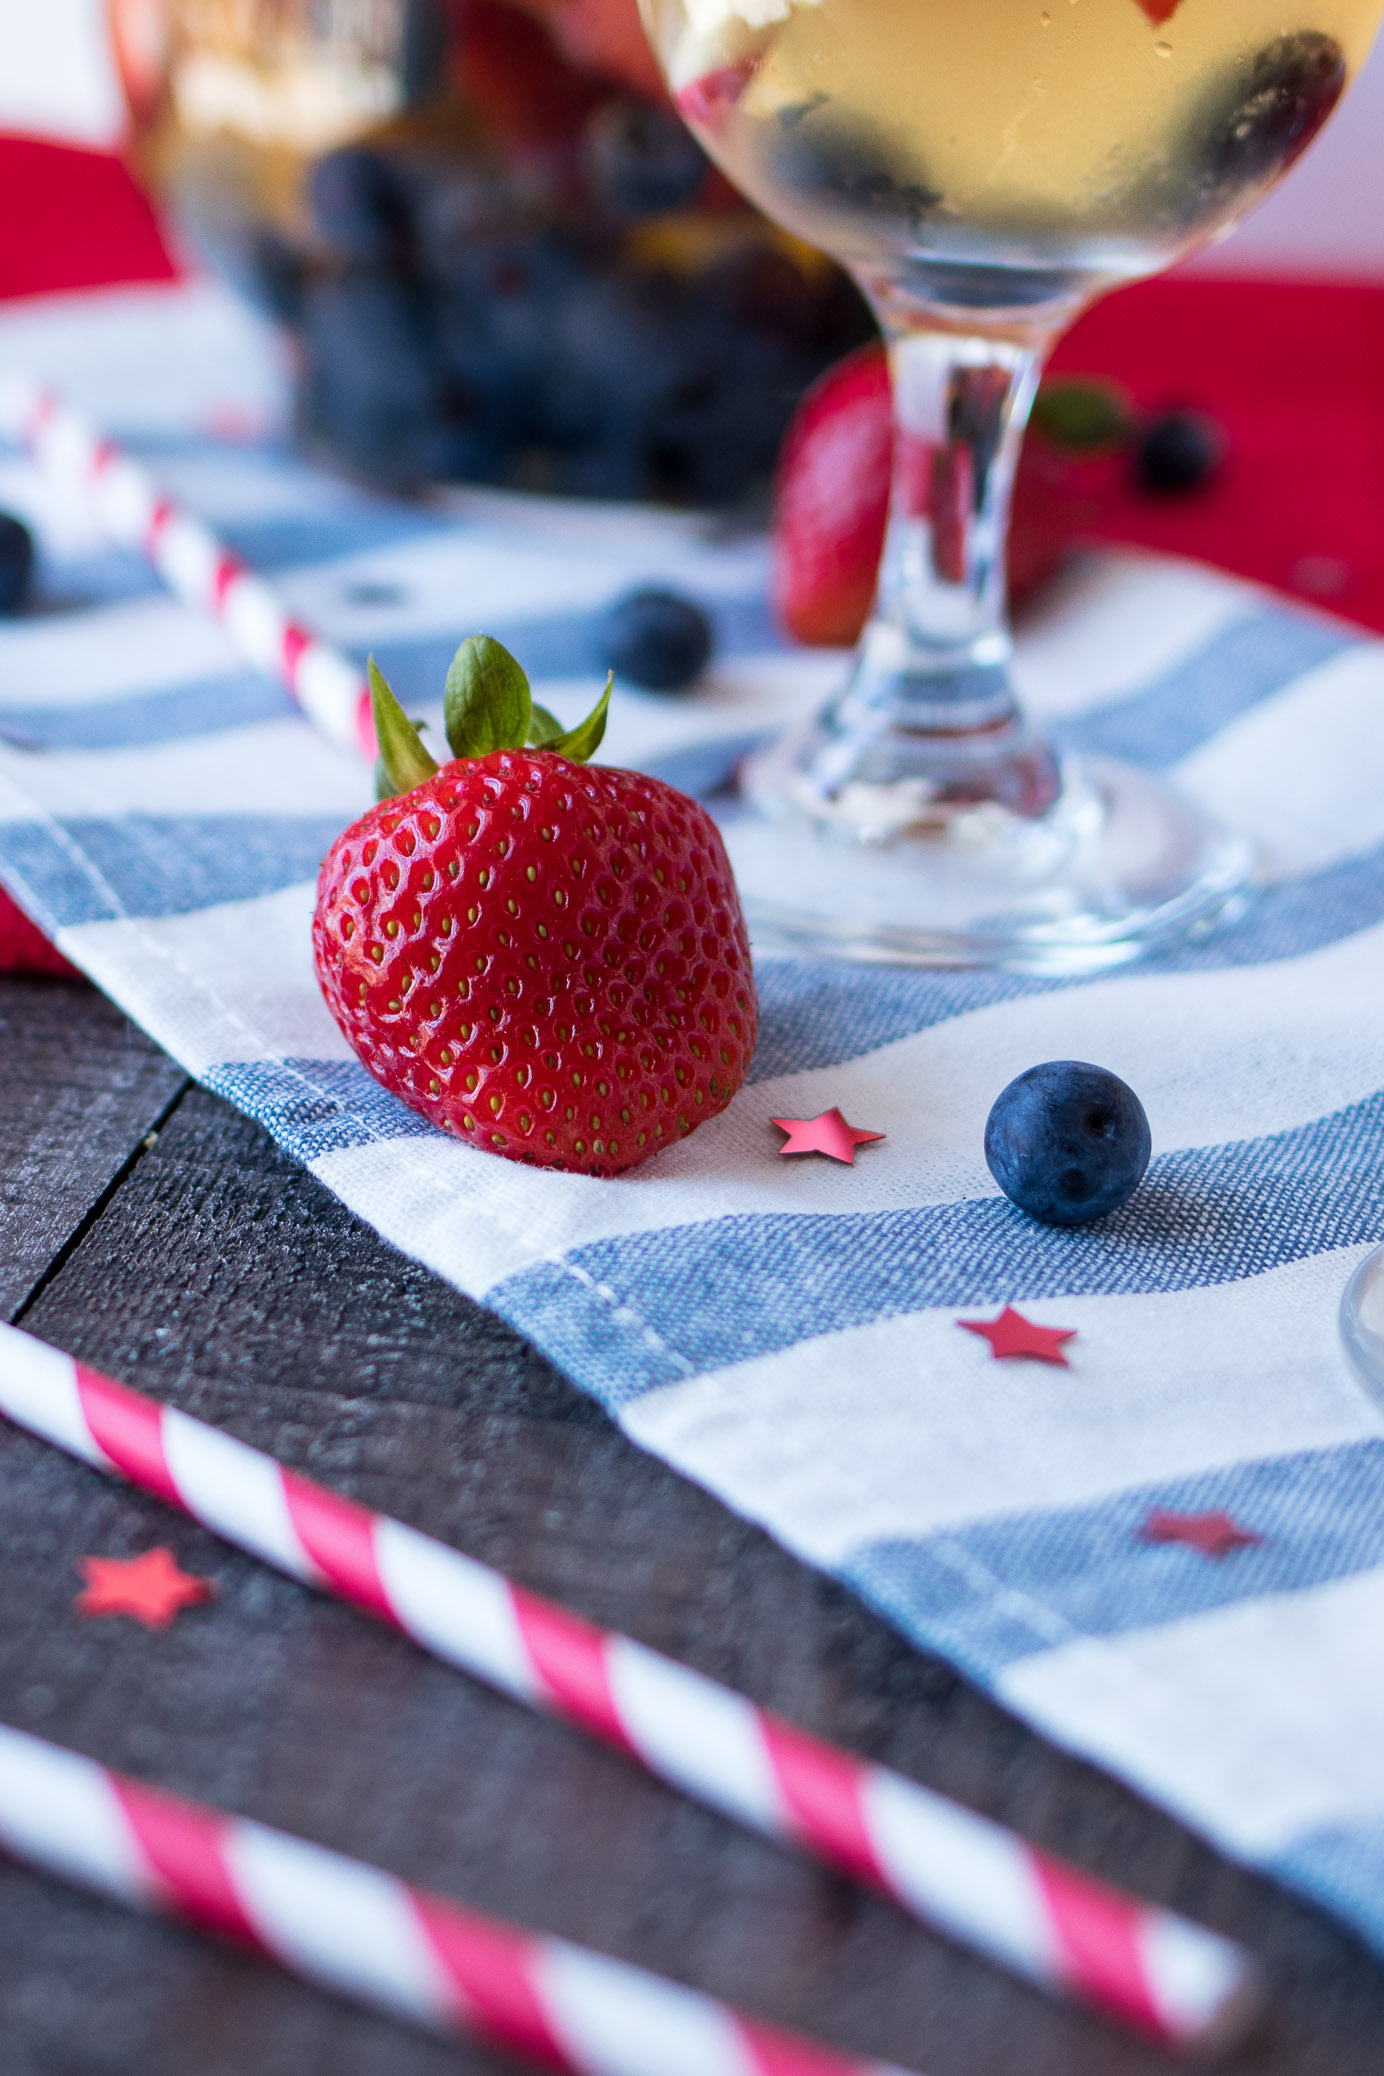 Strawberry and blueberry on a blue striped tablecloth